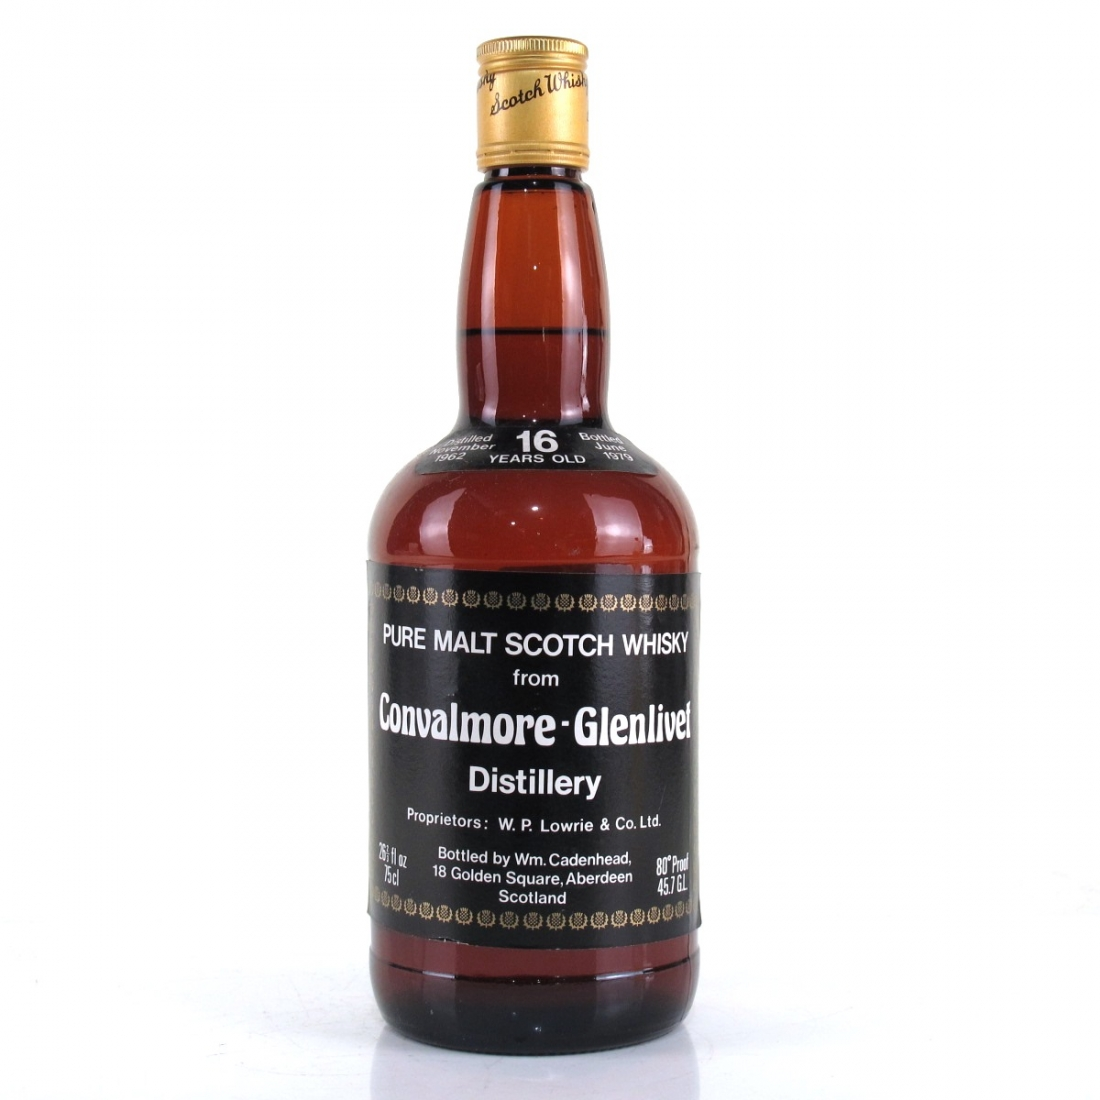 Convalmore-Glenlivet 1962 Cadenhead's 16 Year Old